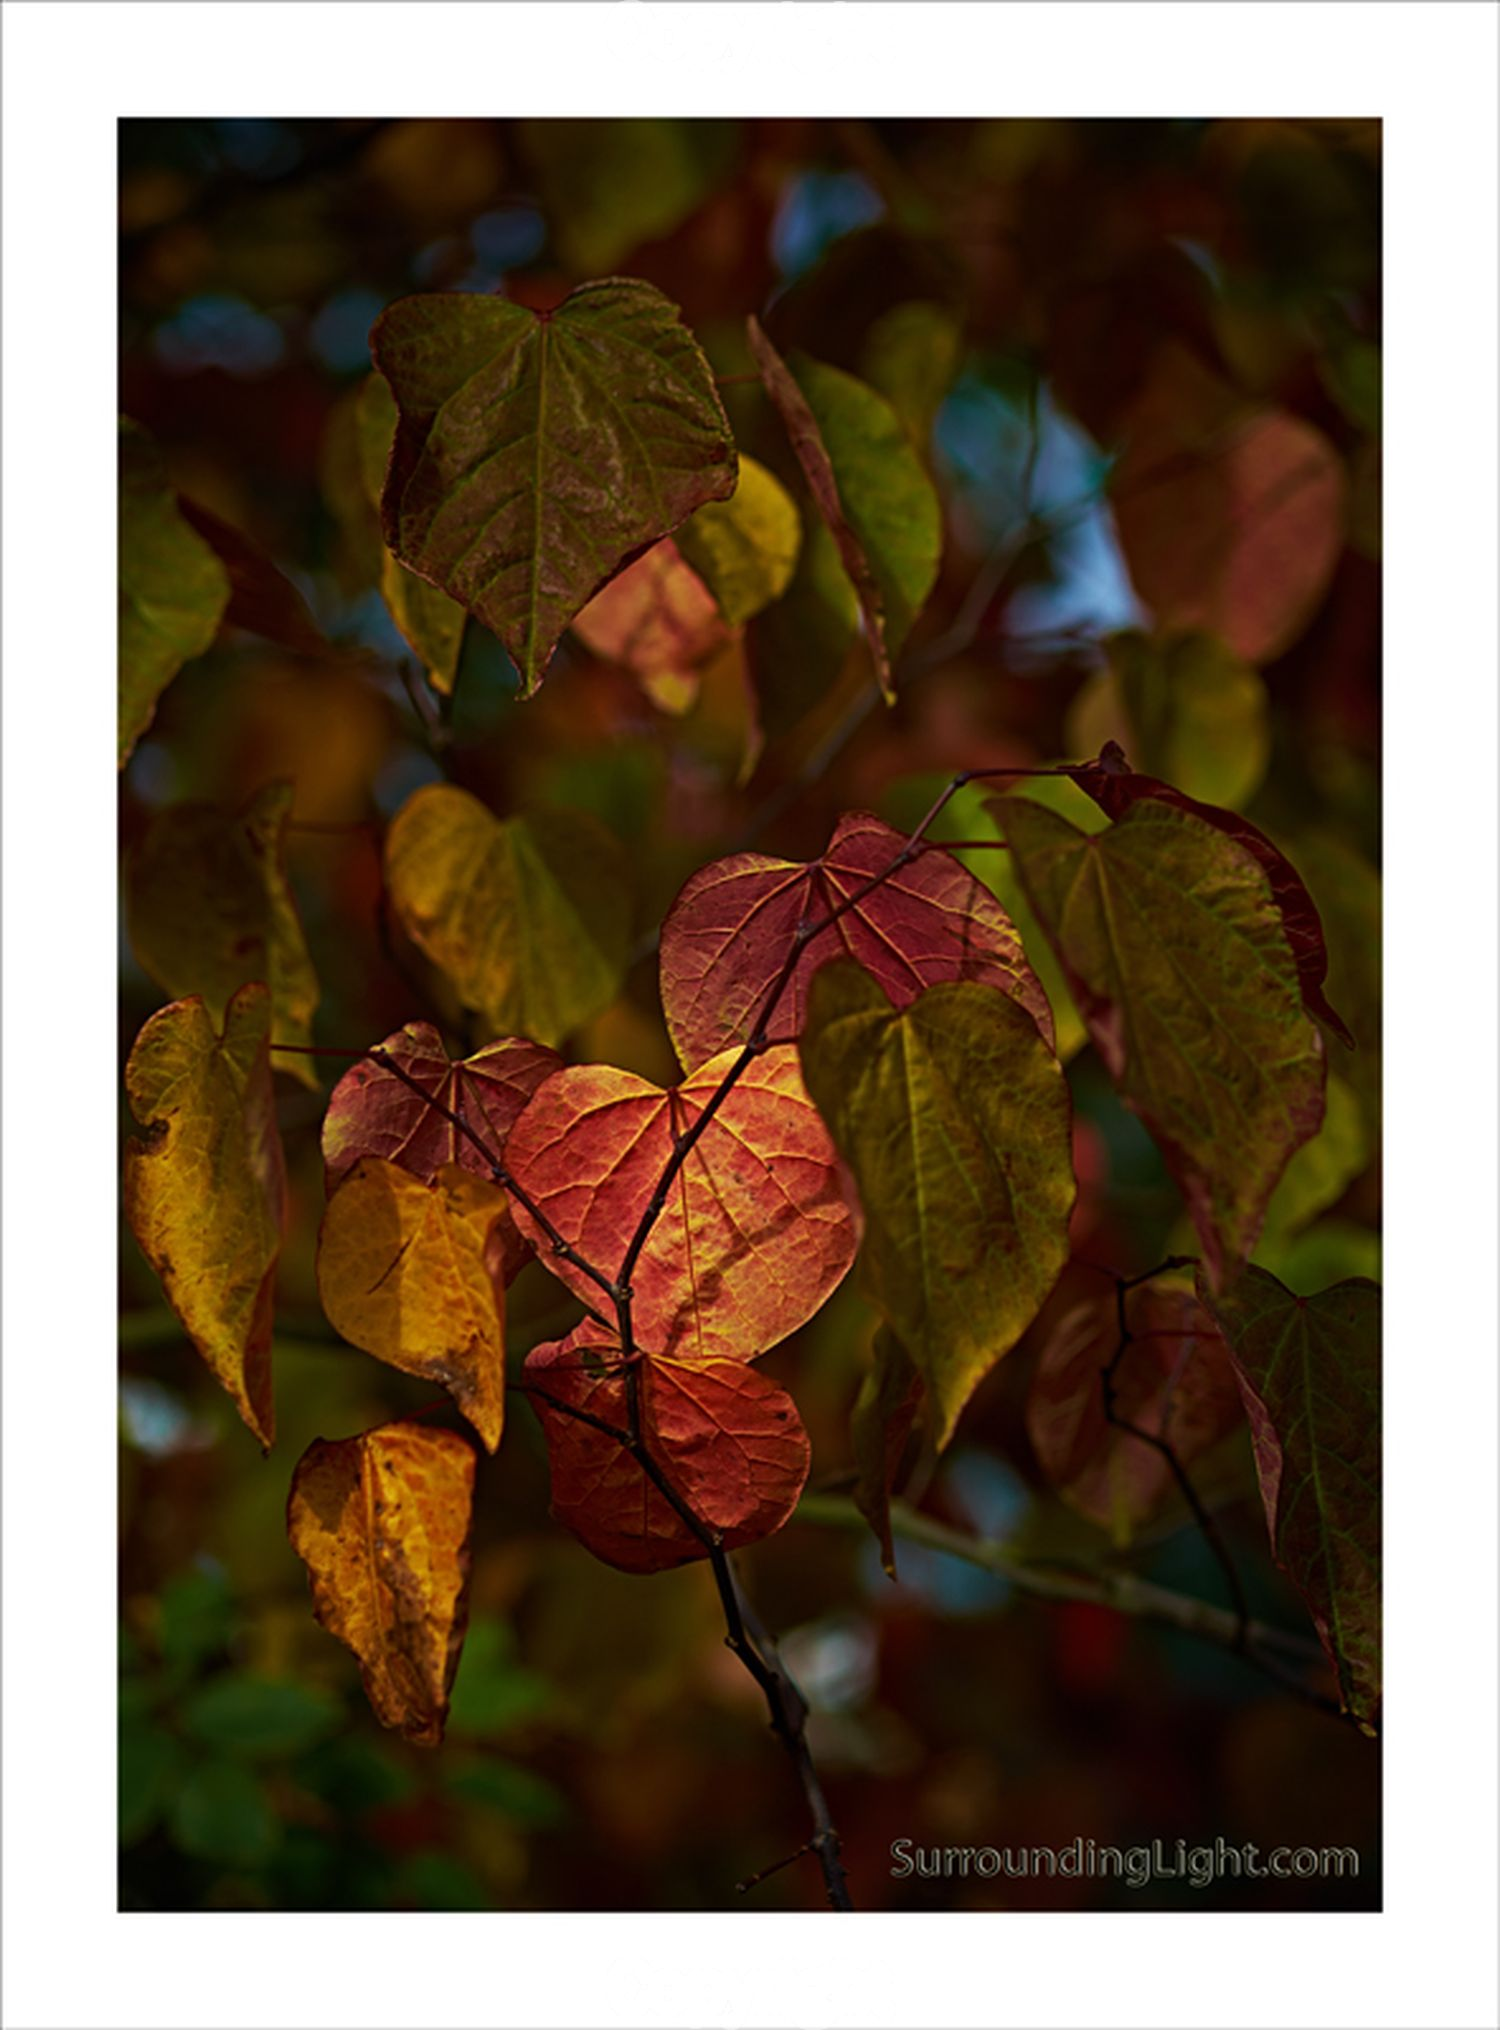 Pete Delancy: Autumn Gold  Equipment: Fujifilm X-E1 & 60mm